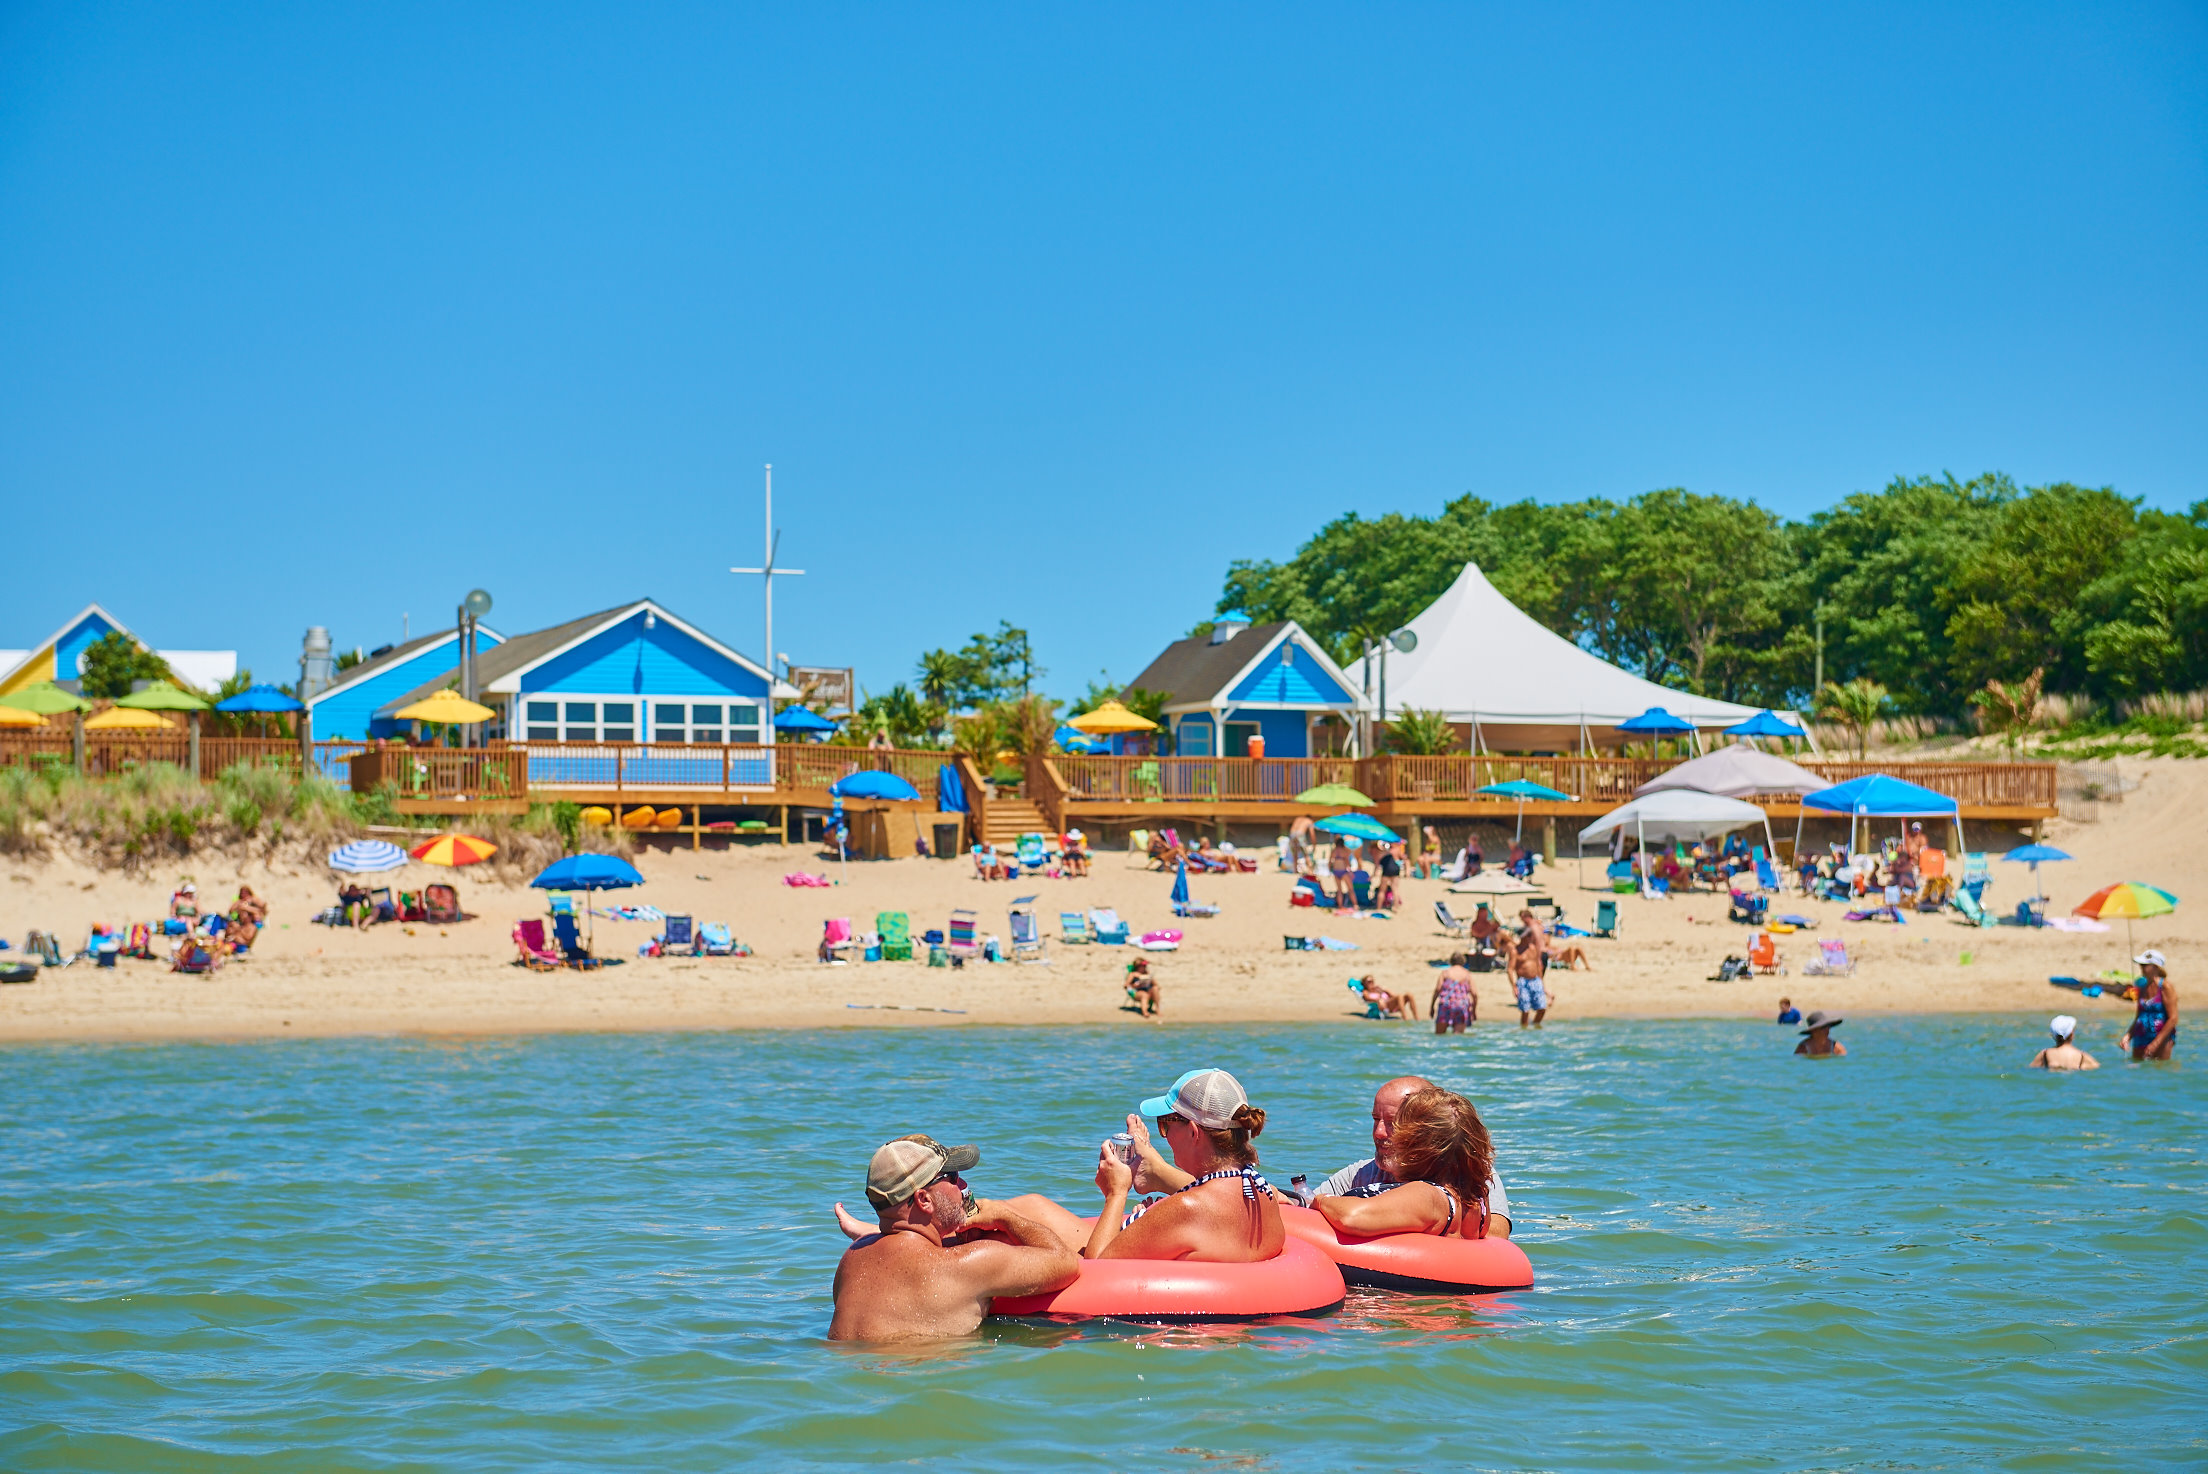 A group of people tubing on the water with a beach in the background.